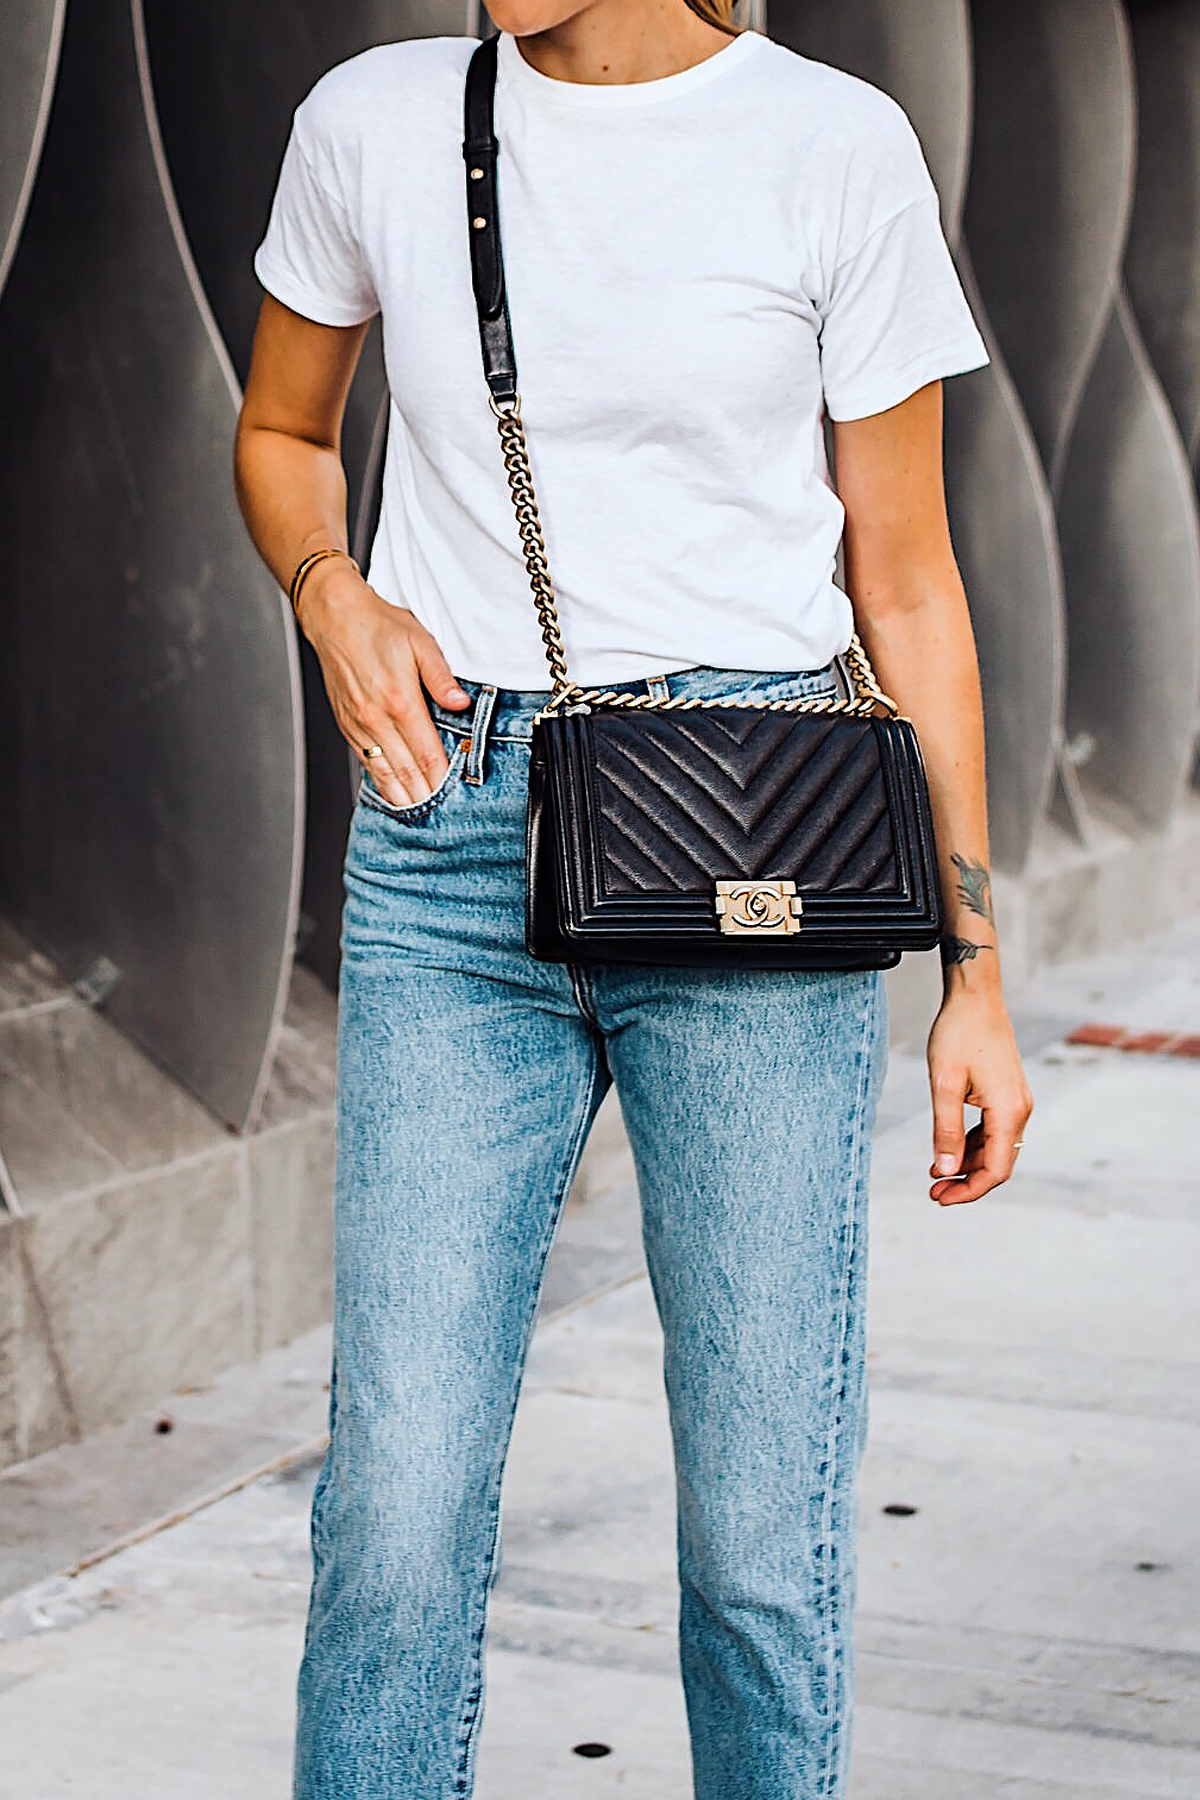 Woman Wearing Fashion Jackson White Tshirt Levis Wedgie Jeans Chanel Black Boy Bag Fashion Jackson San Diego Fashion Blogger Street Style